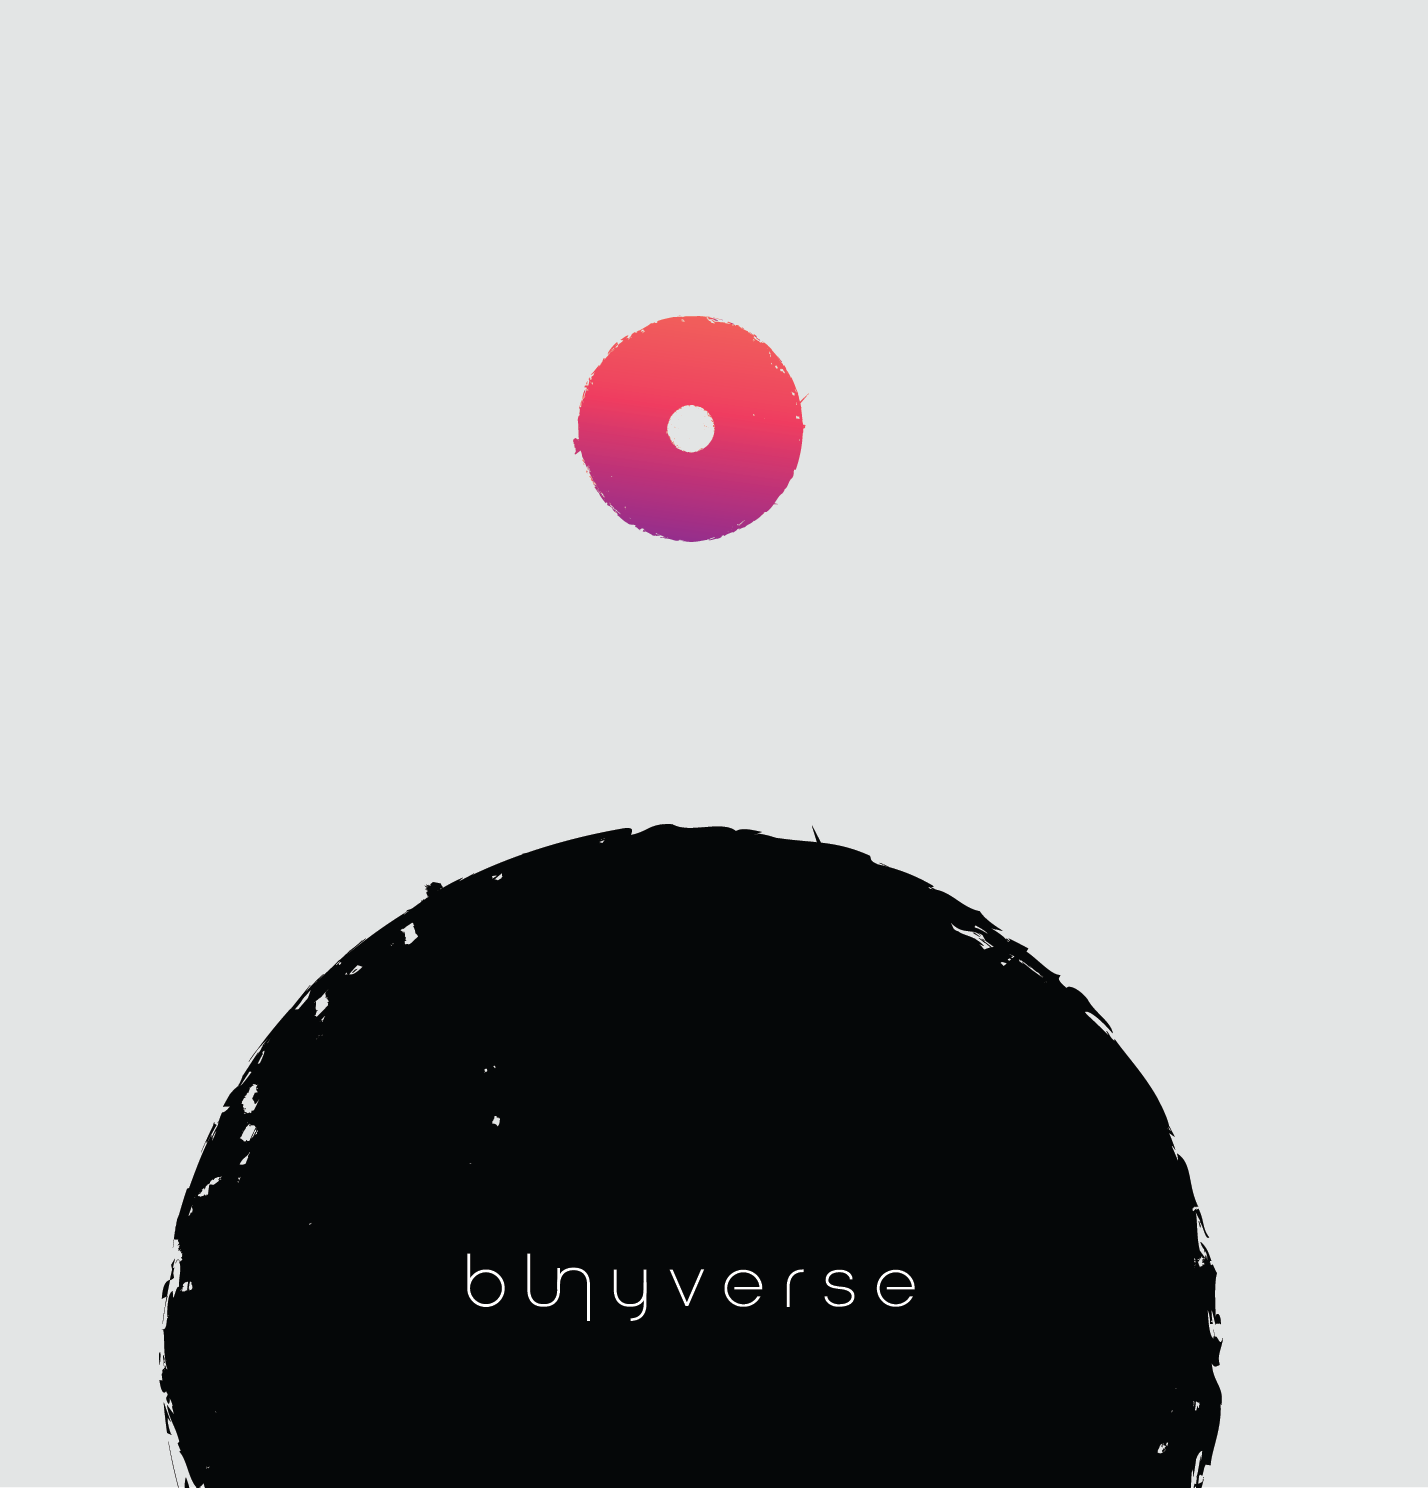 Bunyverse album cover